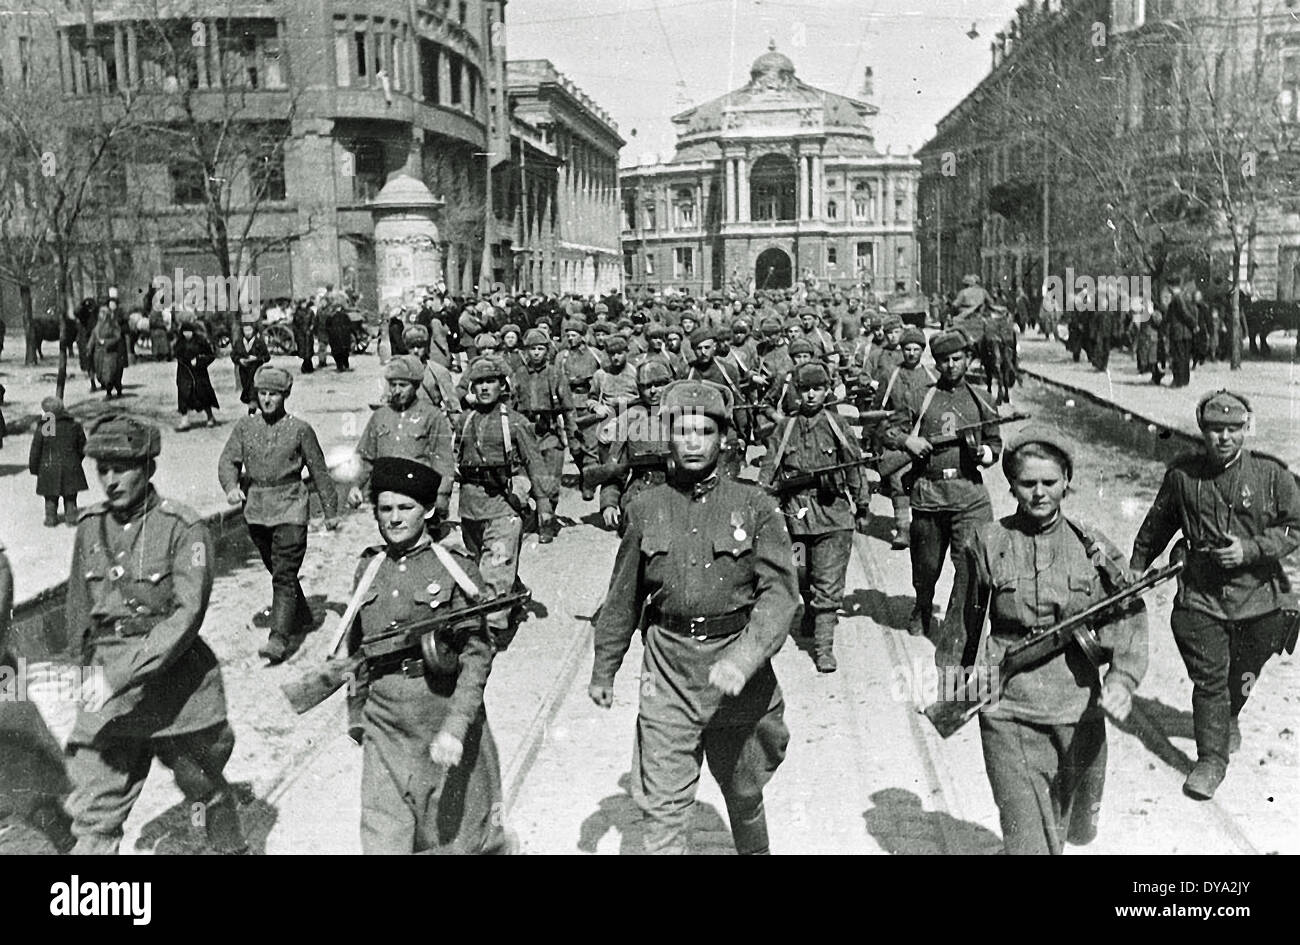 WW II historical war world war second world war USSR guard army street Odessa lieutenant general Tschuikow April 1944 army s - Stock Image